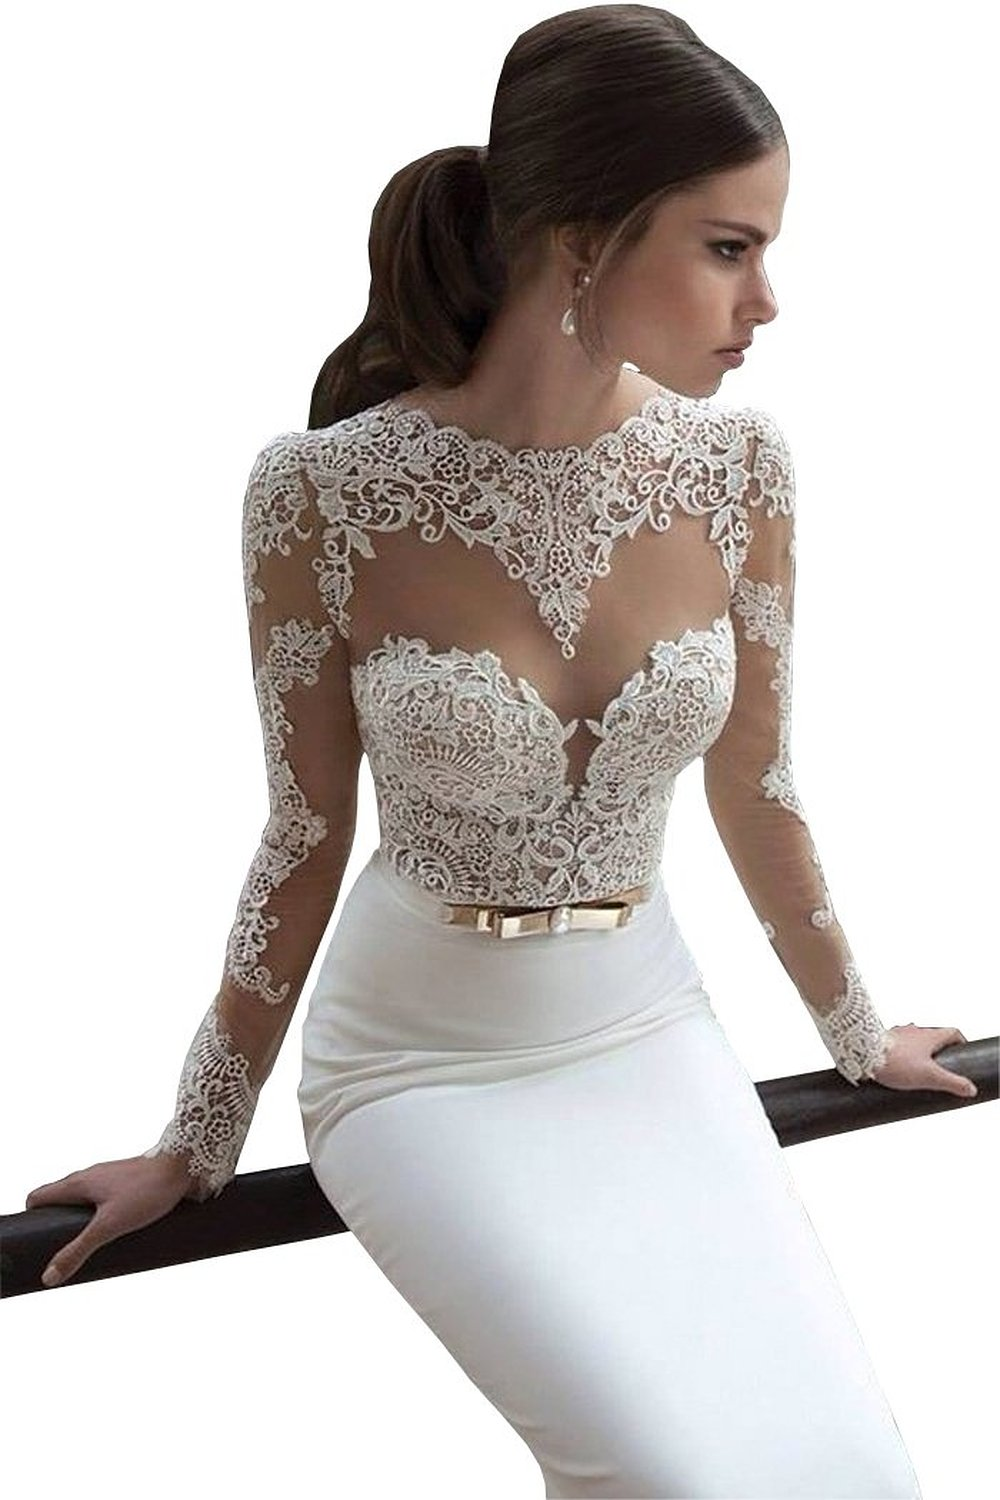 Dress Prom Dresses Formal Dresses Long Sleeve Lace Party Wedding